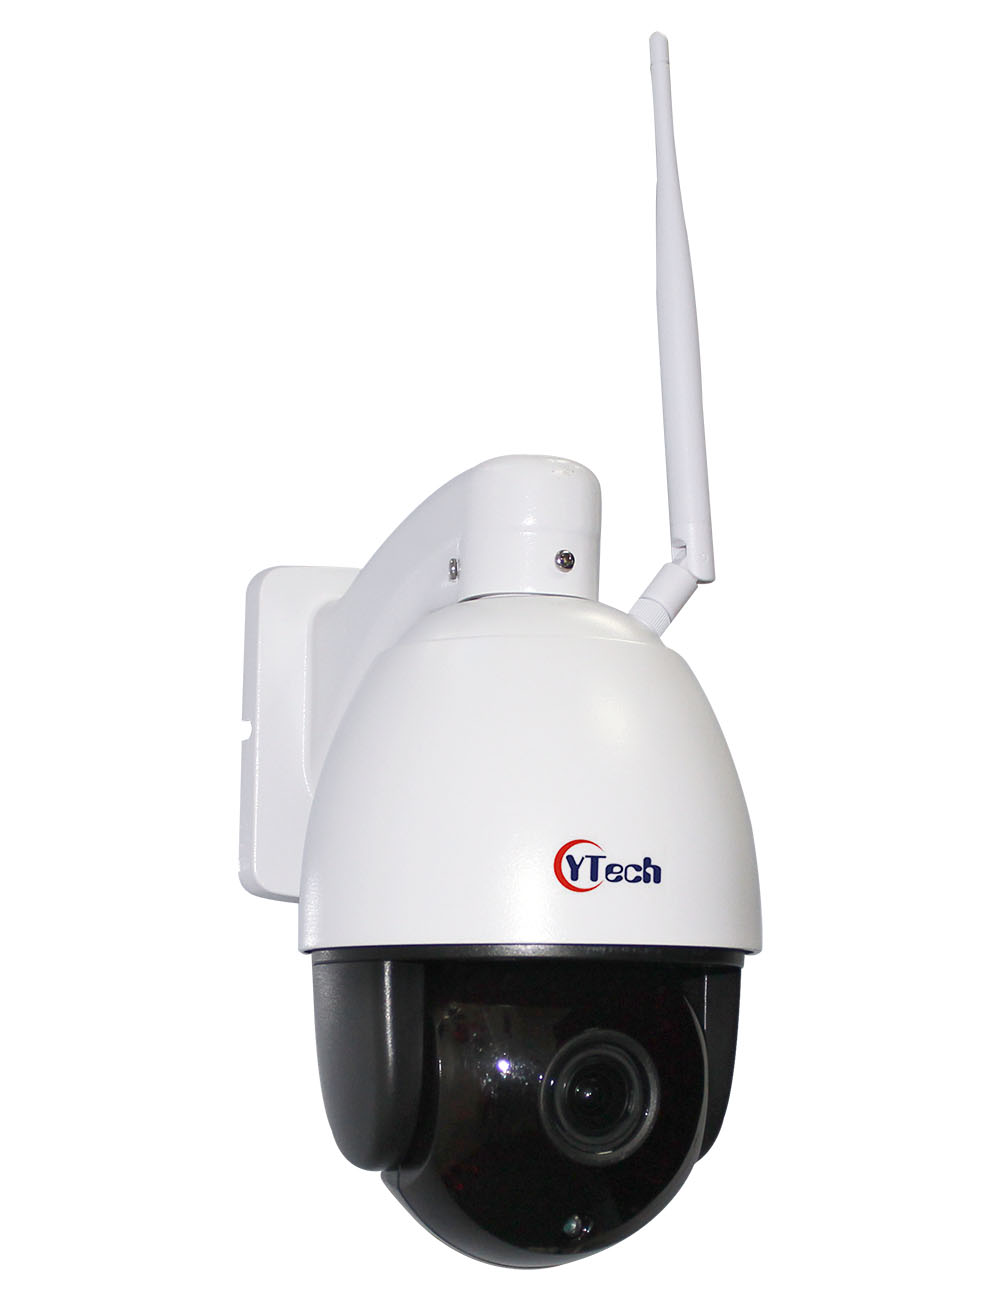 100M IR 2.0M Pixels HD 5X Optical Zoom Wireless Wifi Outdoor Waterproof Dome PTZ IP Camera